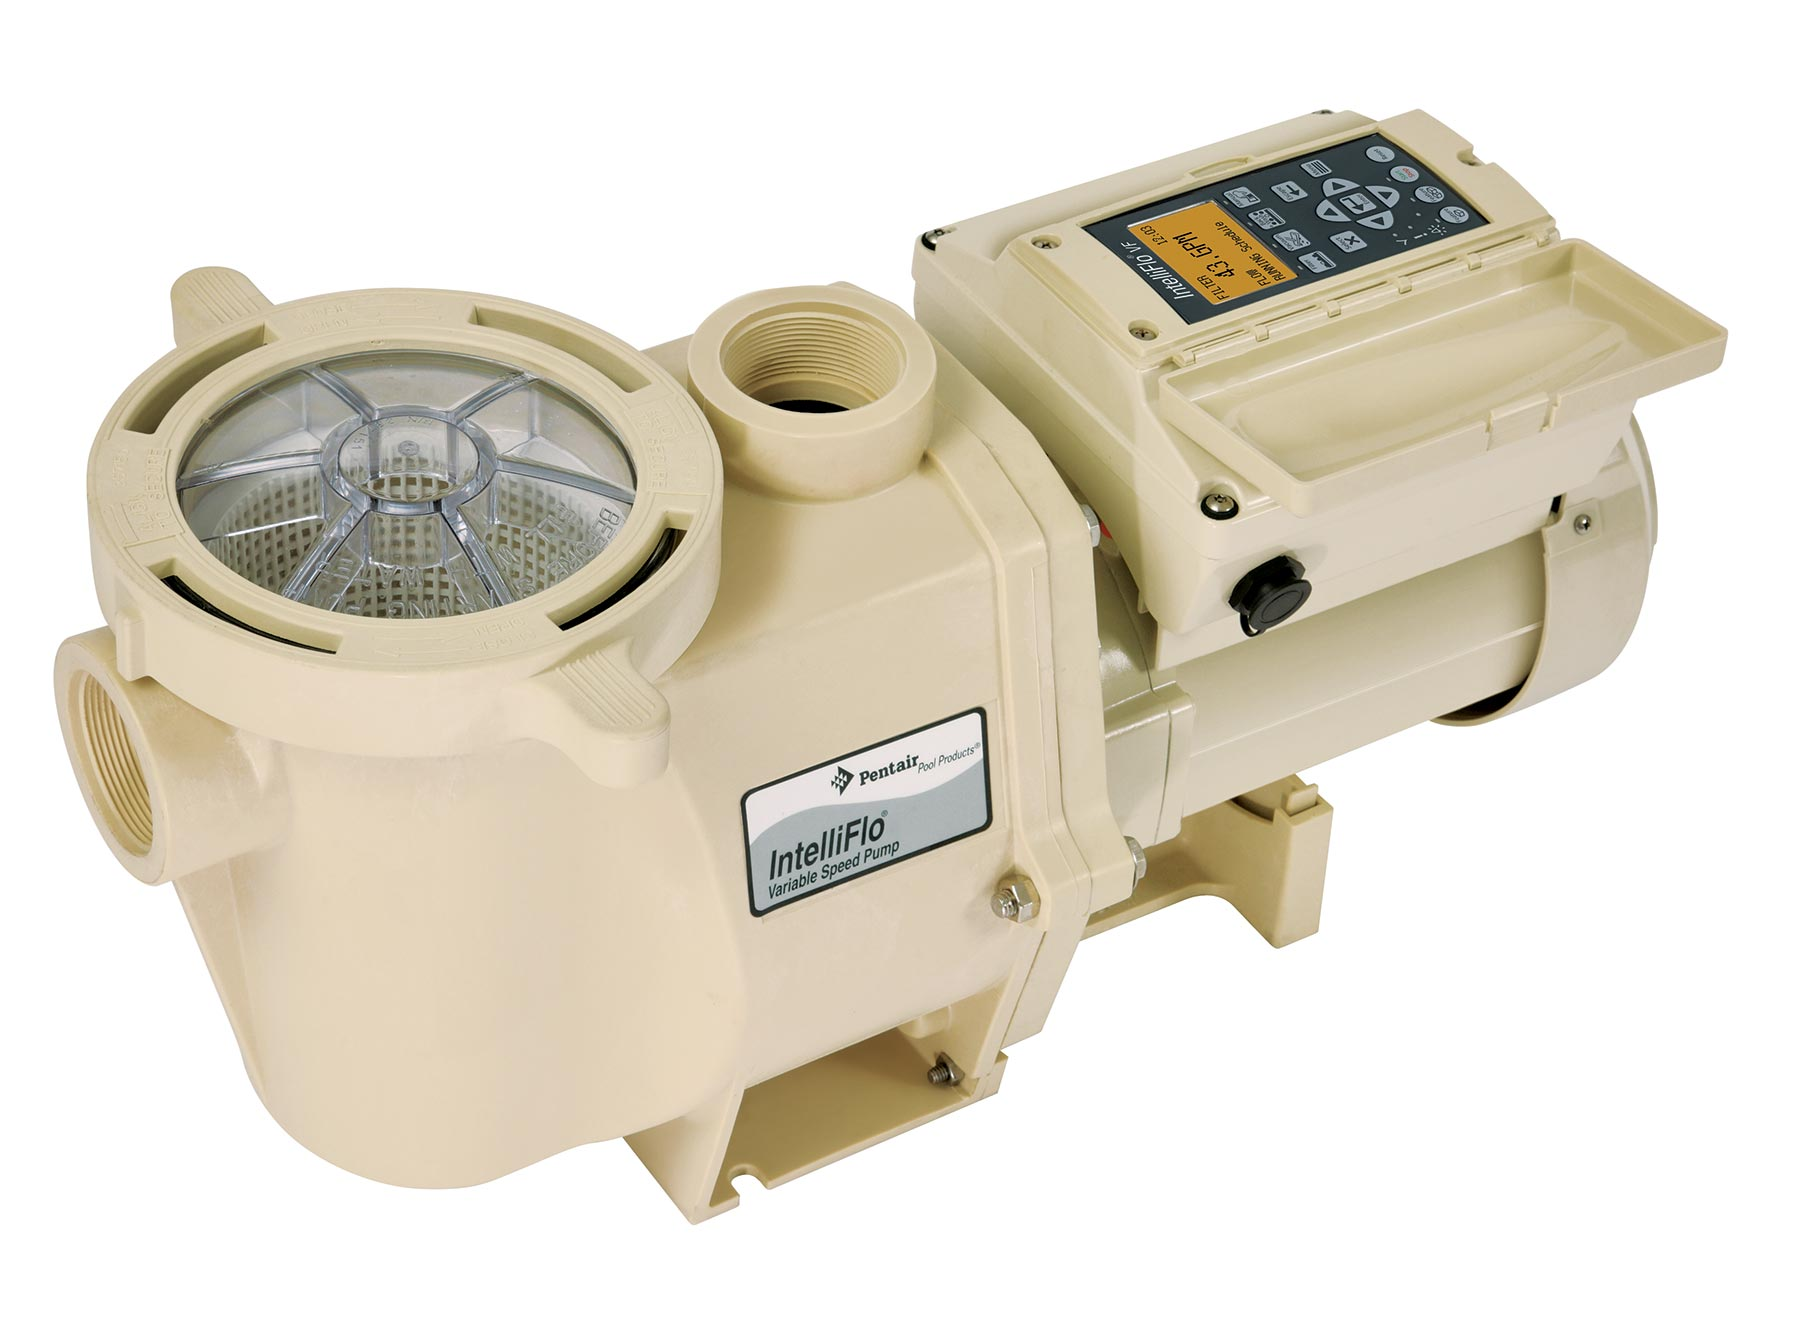 Pentair Intelliflo Vf Variable Flow Pool Pump